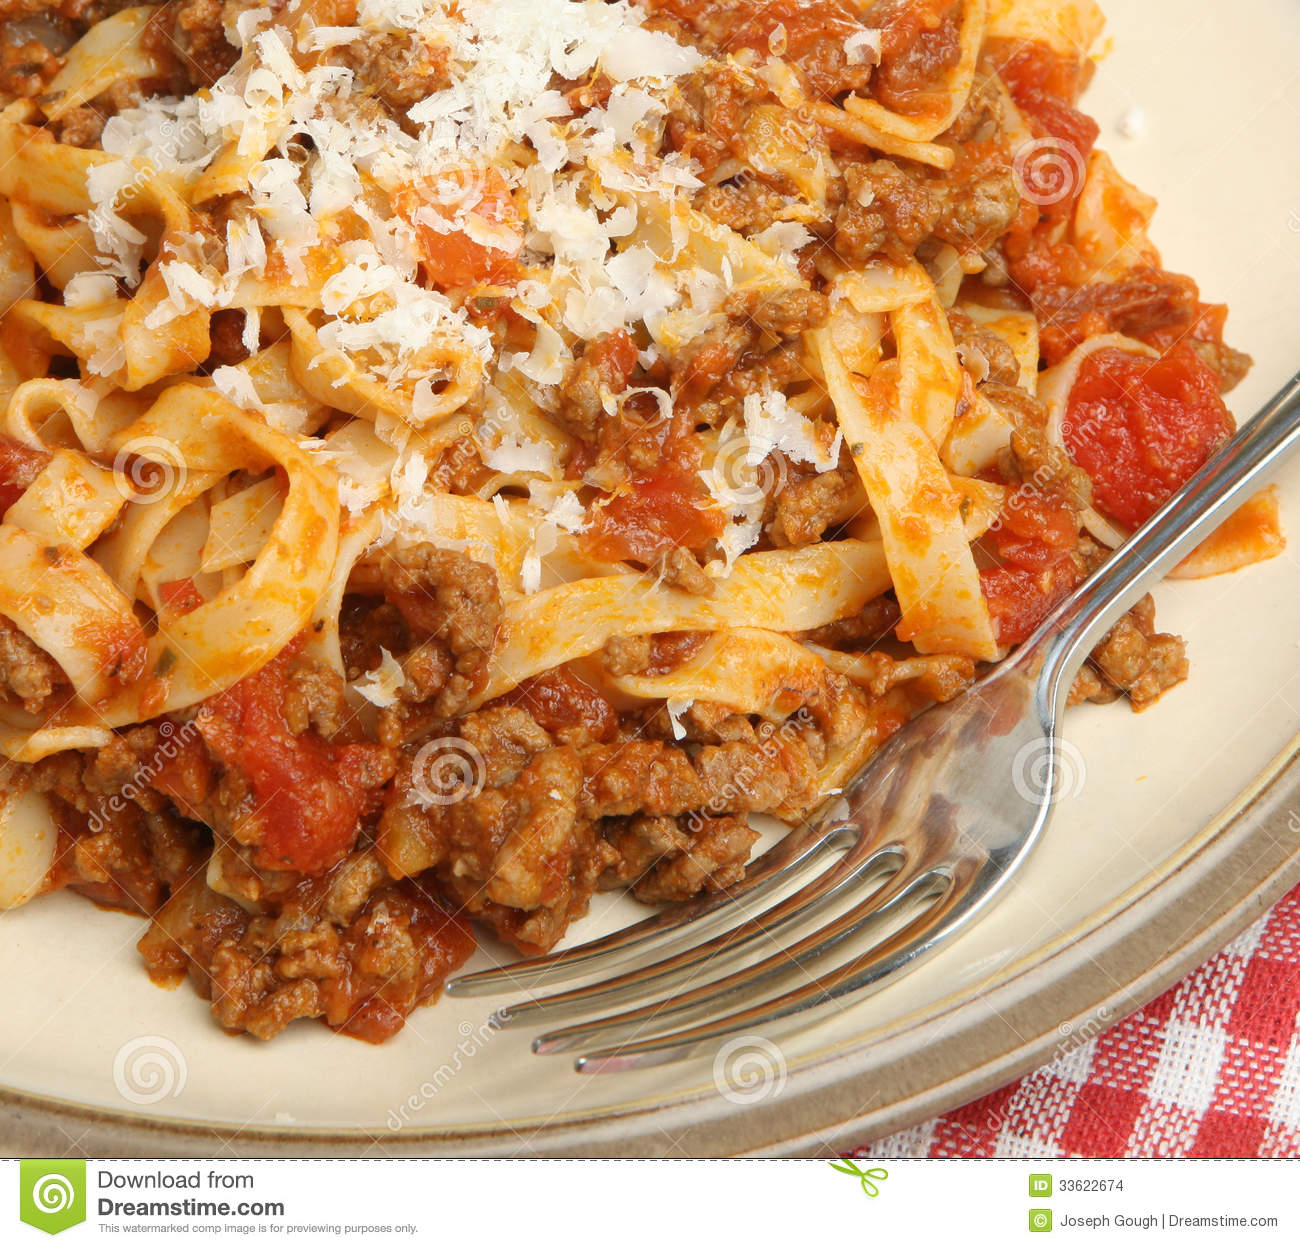 Pasta With Bolognese Sauce And Parmesan Cheese Stock Images - Image ...